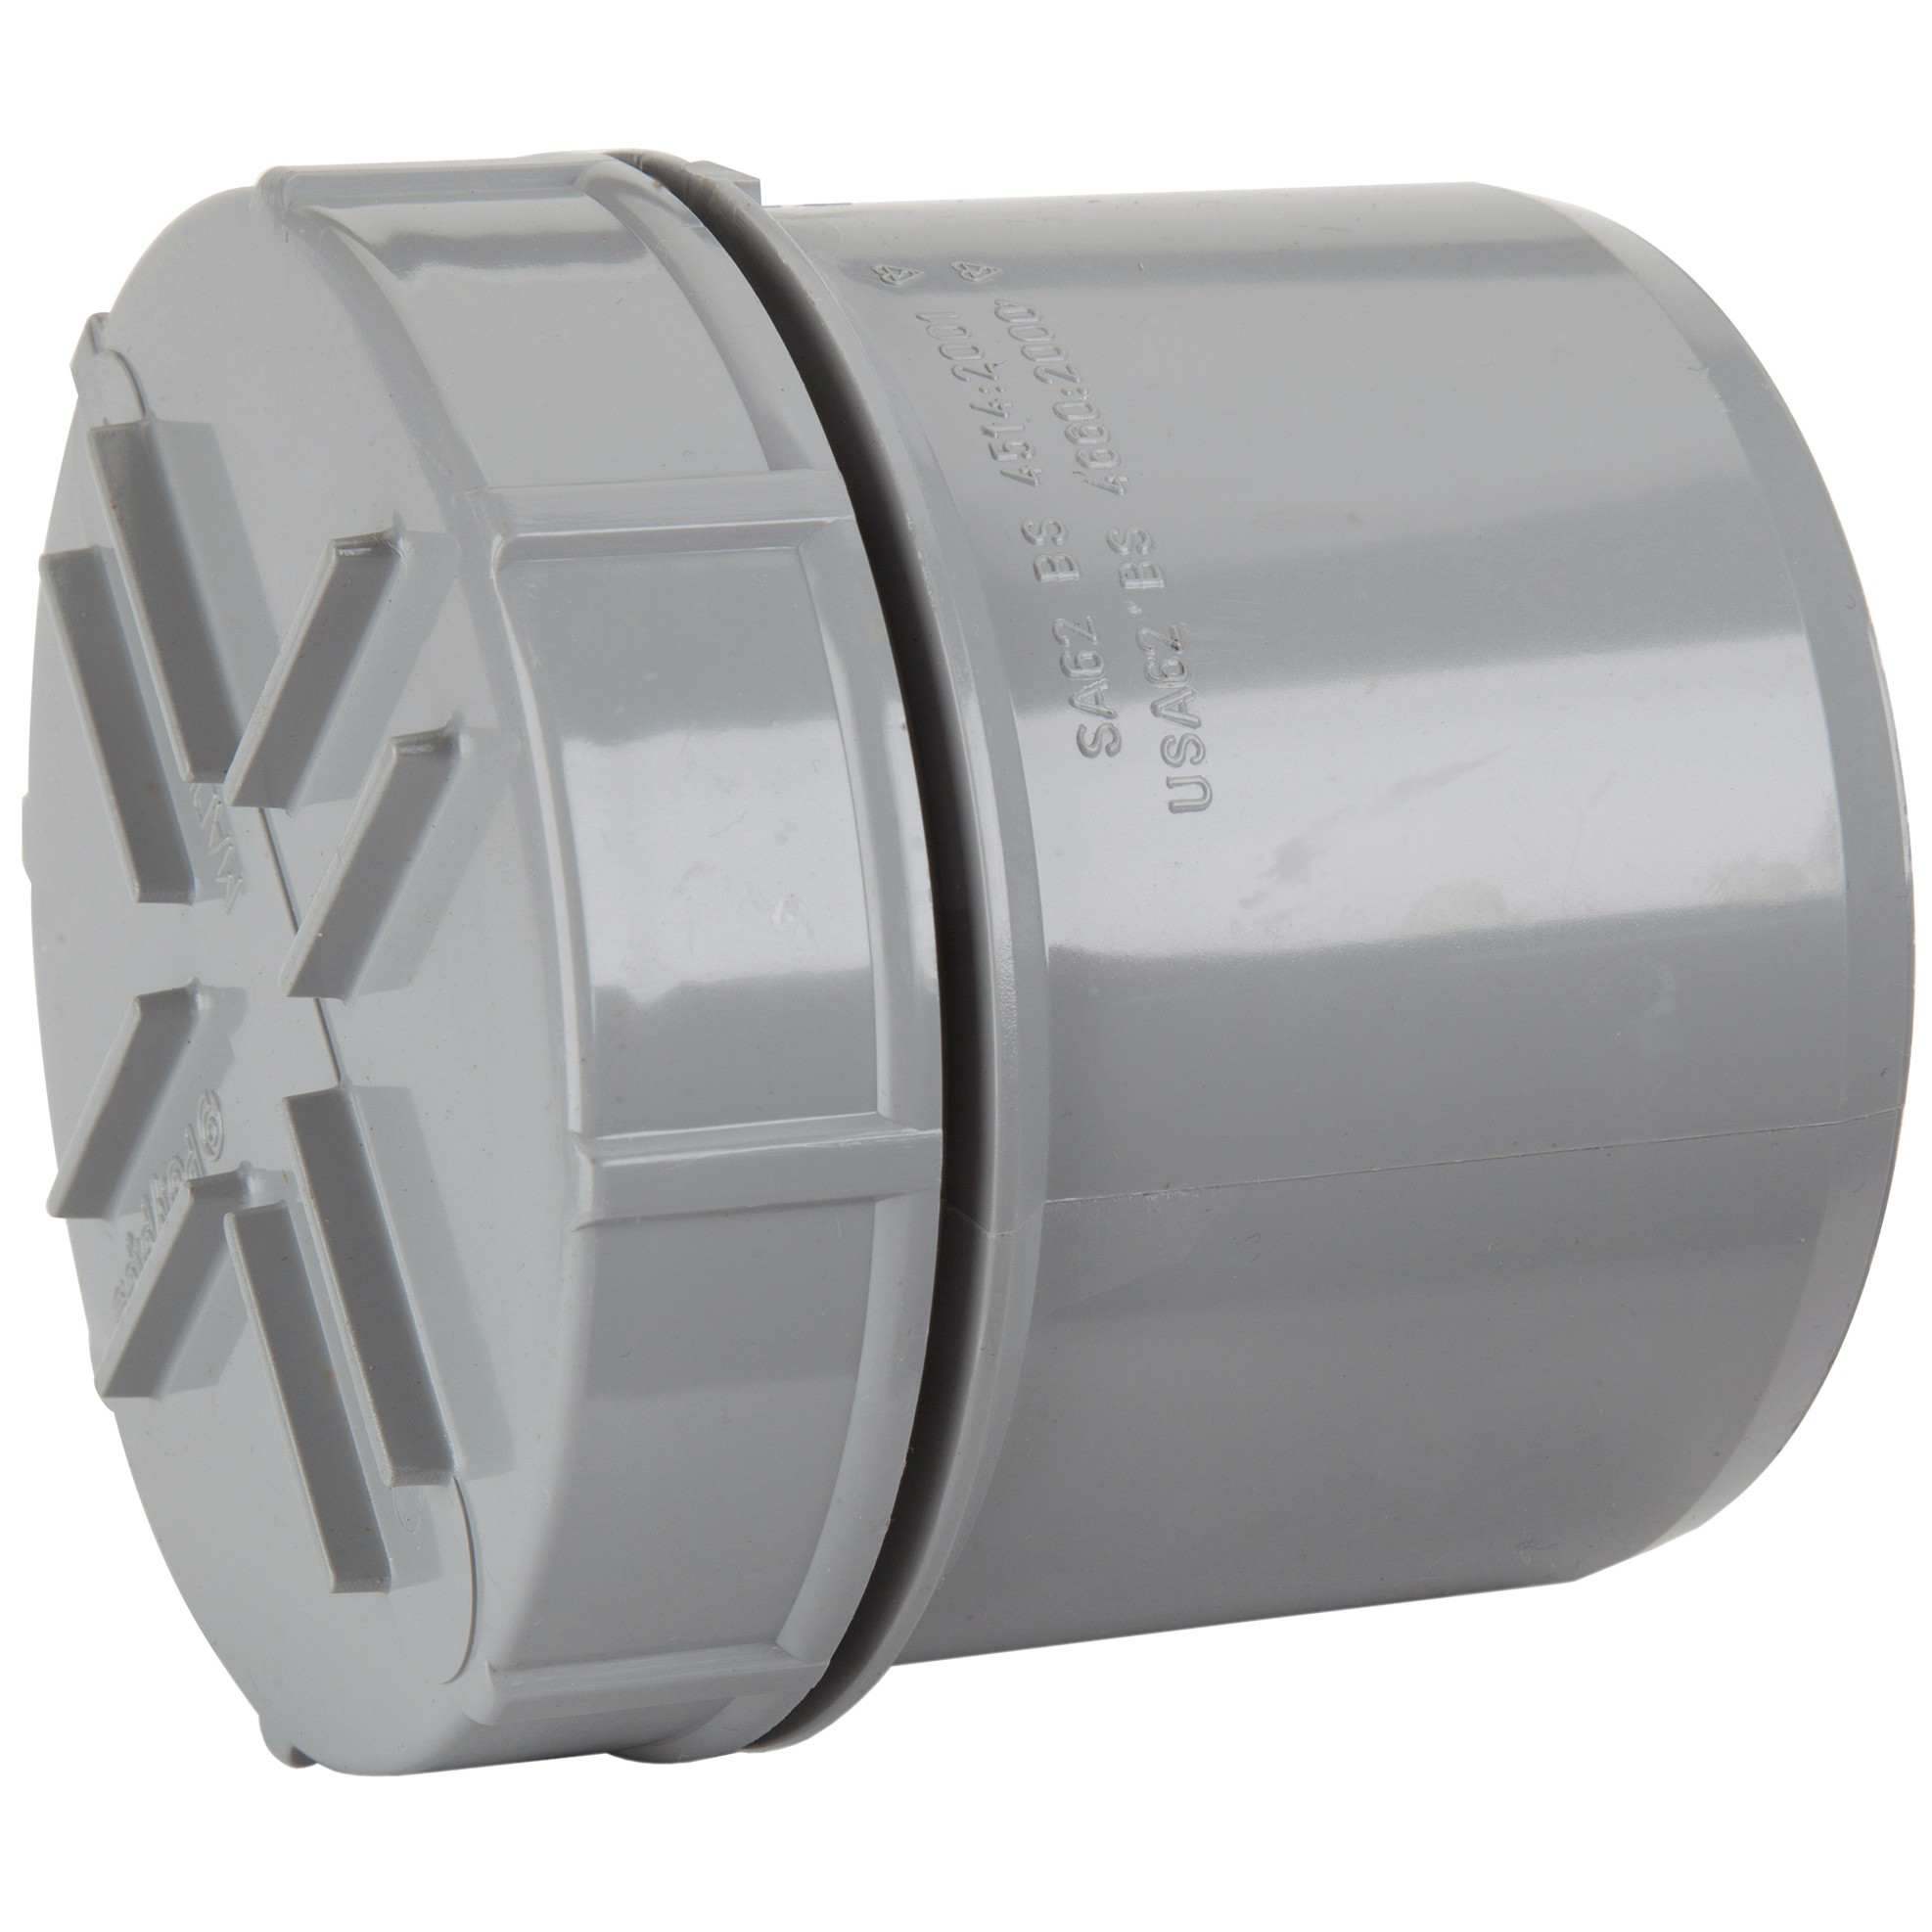 Polypipe 110mm Soil Spigot Tail Screwed Access Cap - Grey